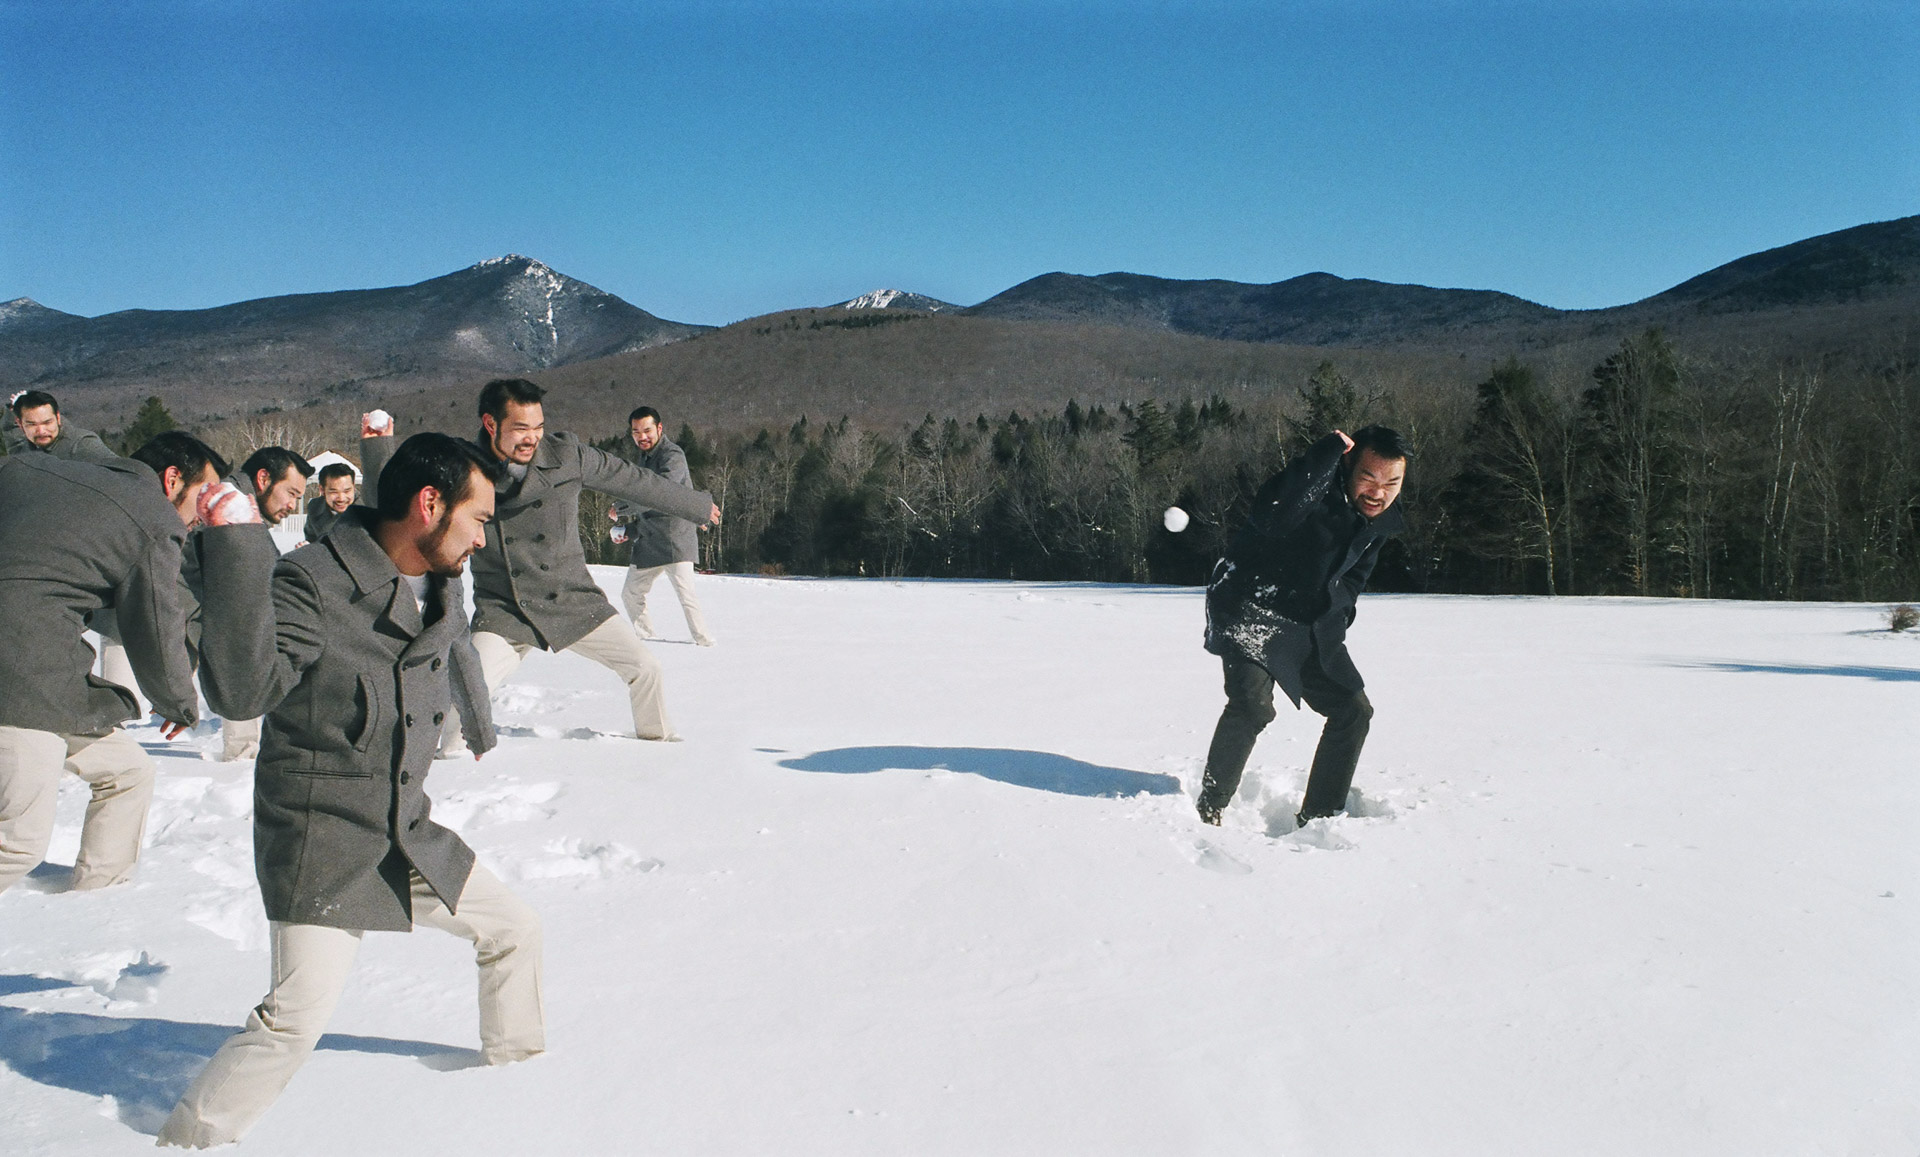 A guy in white throwing snowballs at the same guy in black.